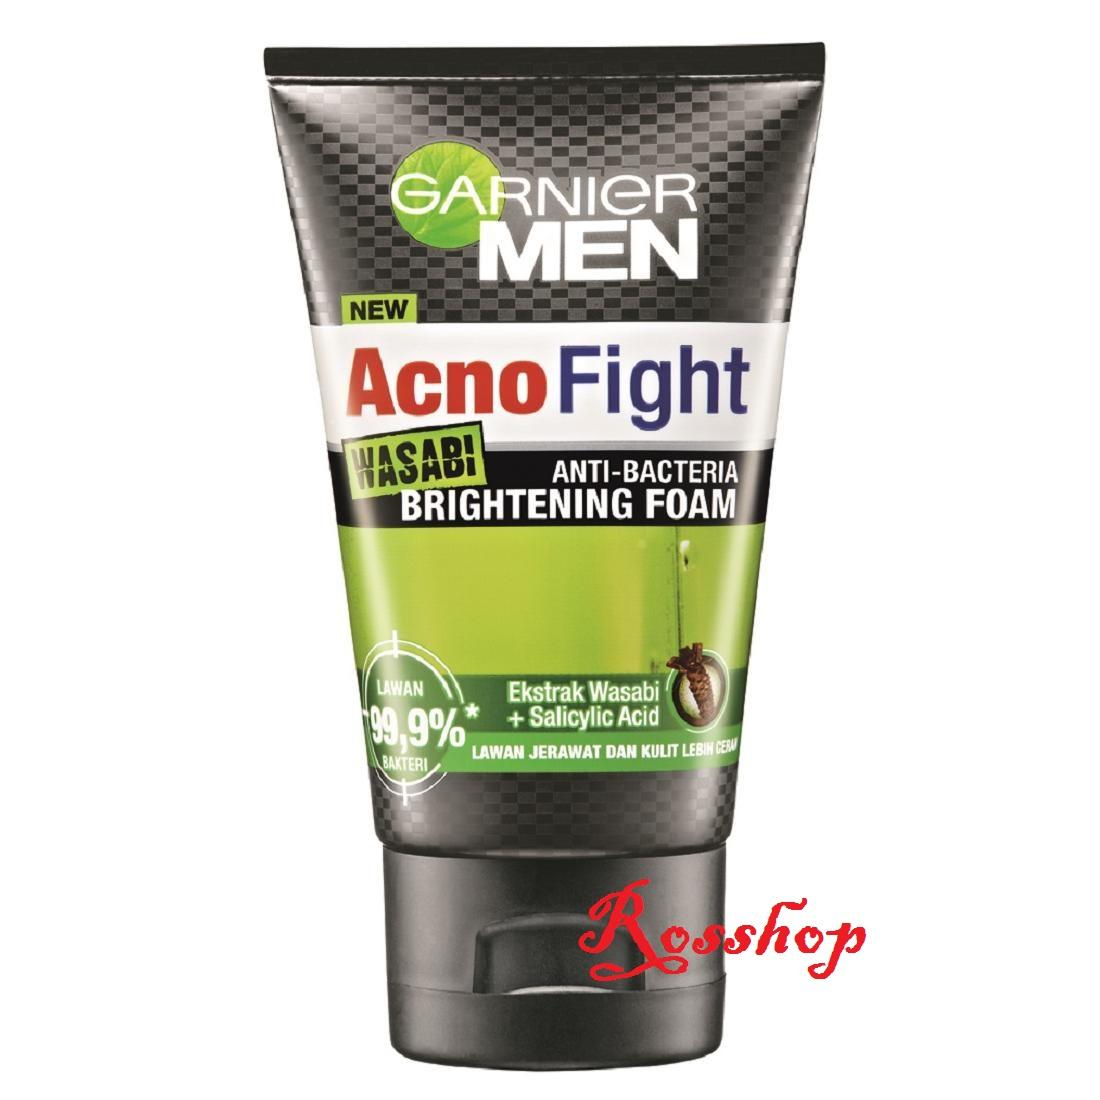 Buy Sell Cheapest Wasabi Np Fw Best Quality Product Deals Power Battery 2 Pack And Charger For Sony Fw50 Garnier Men Acno Fight Foam 50ml